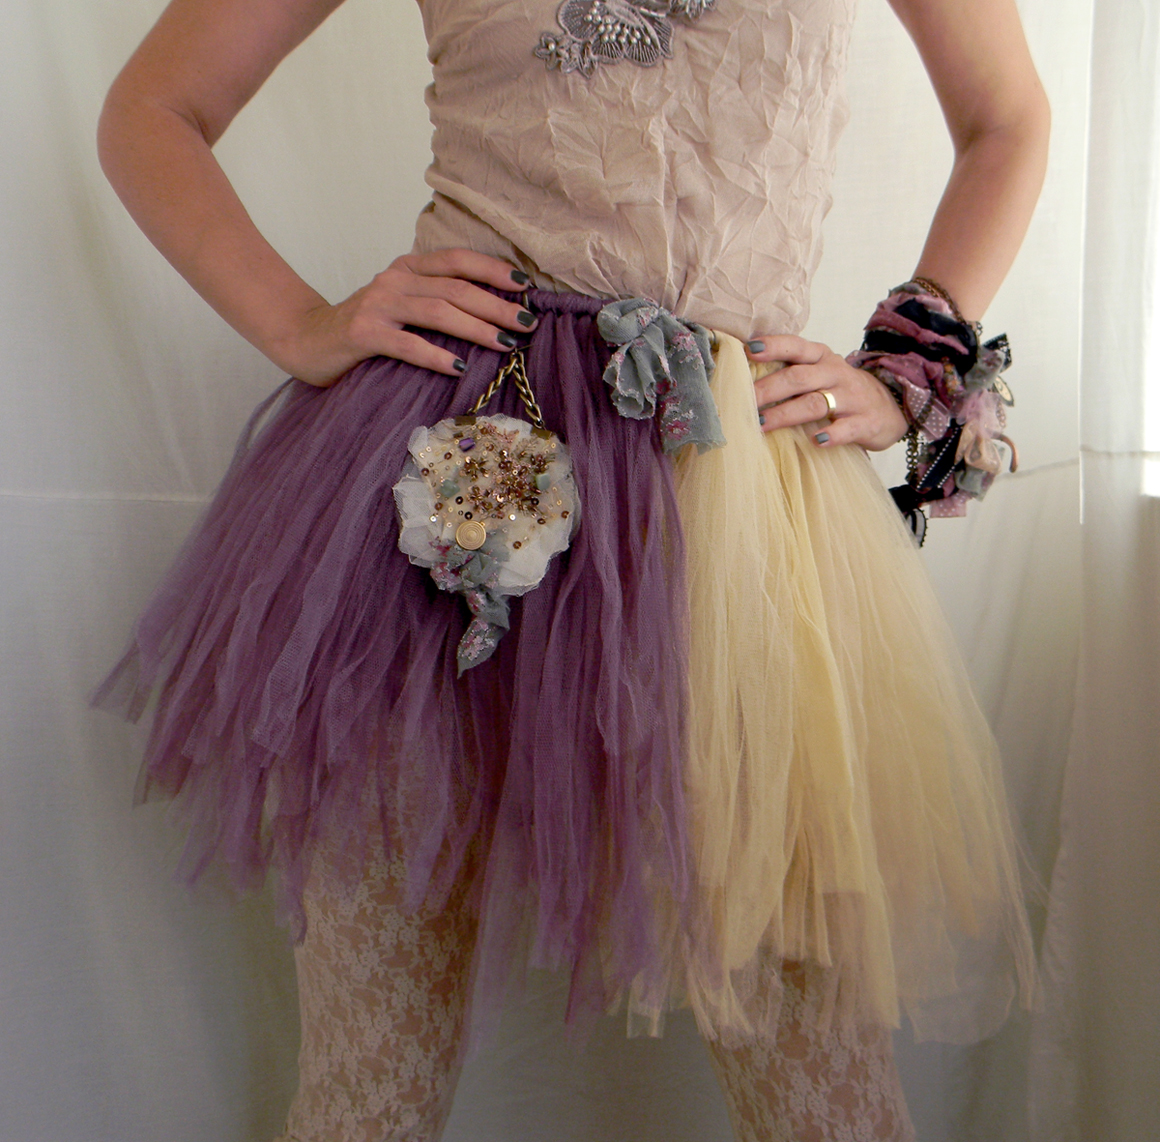 Handmade Tutu Pixie Tattered Skirt